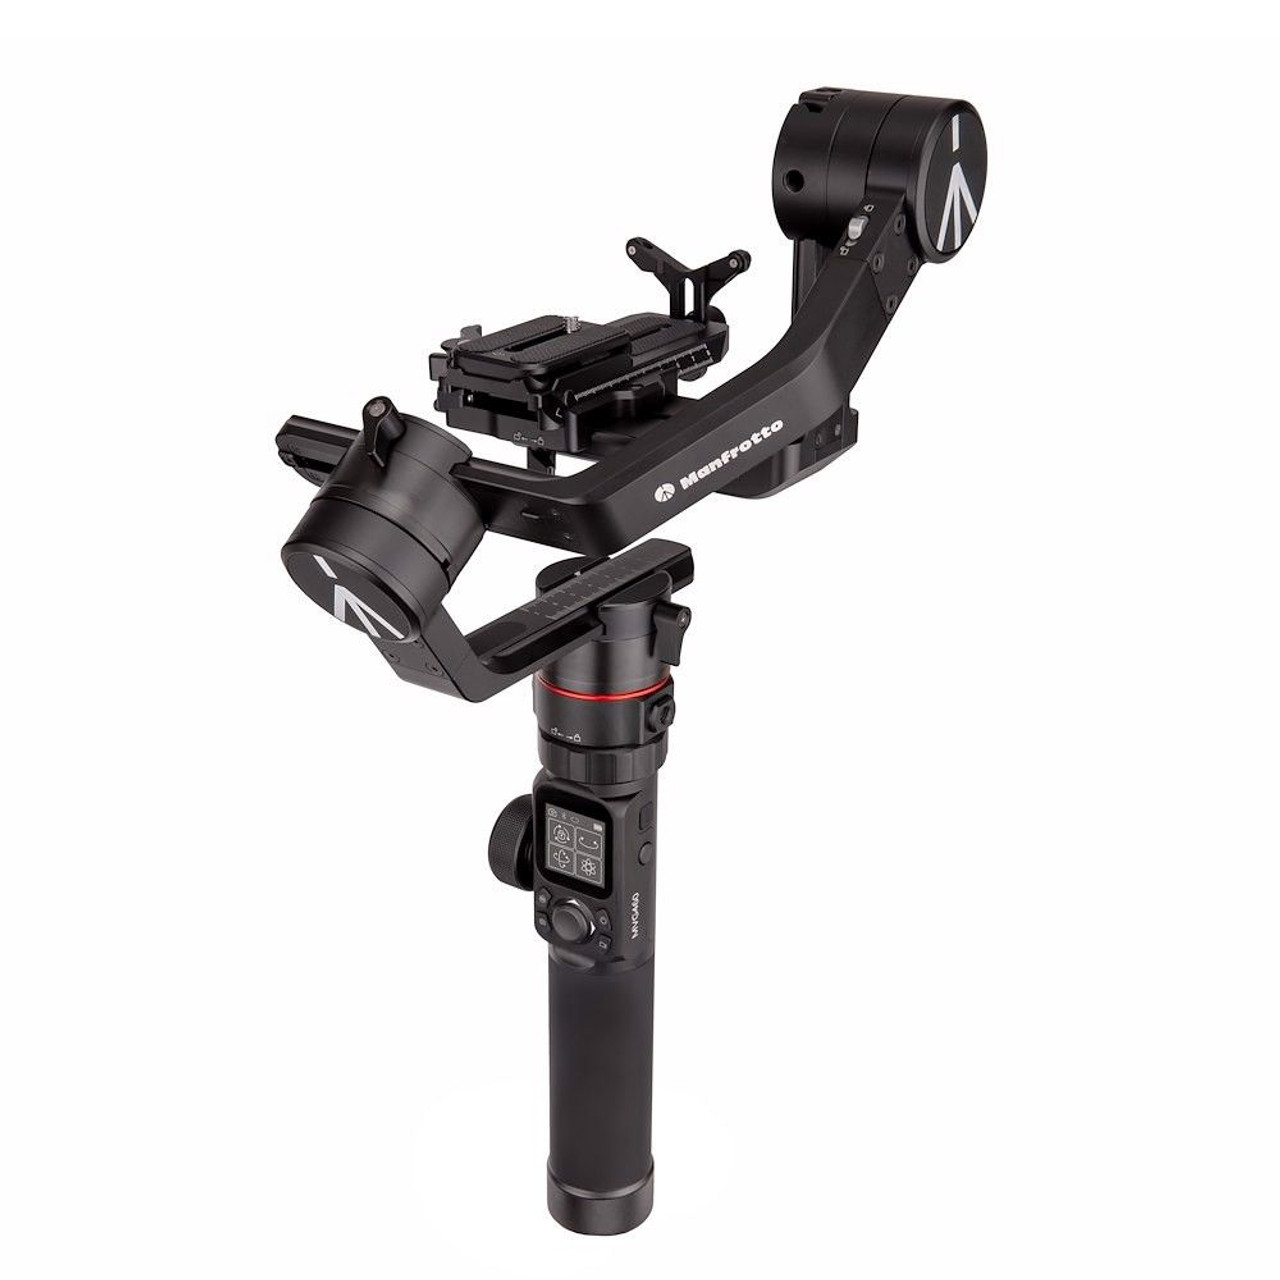 MANFROTTO PROFESSIONAL 3-AXIS GIMBAL KIT